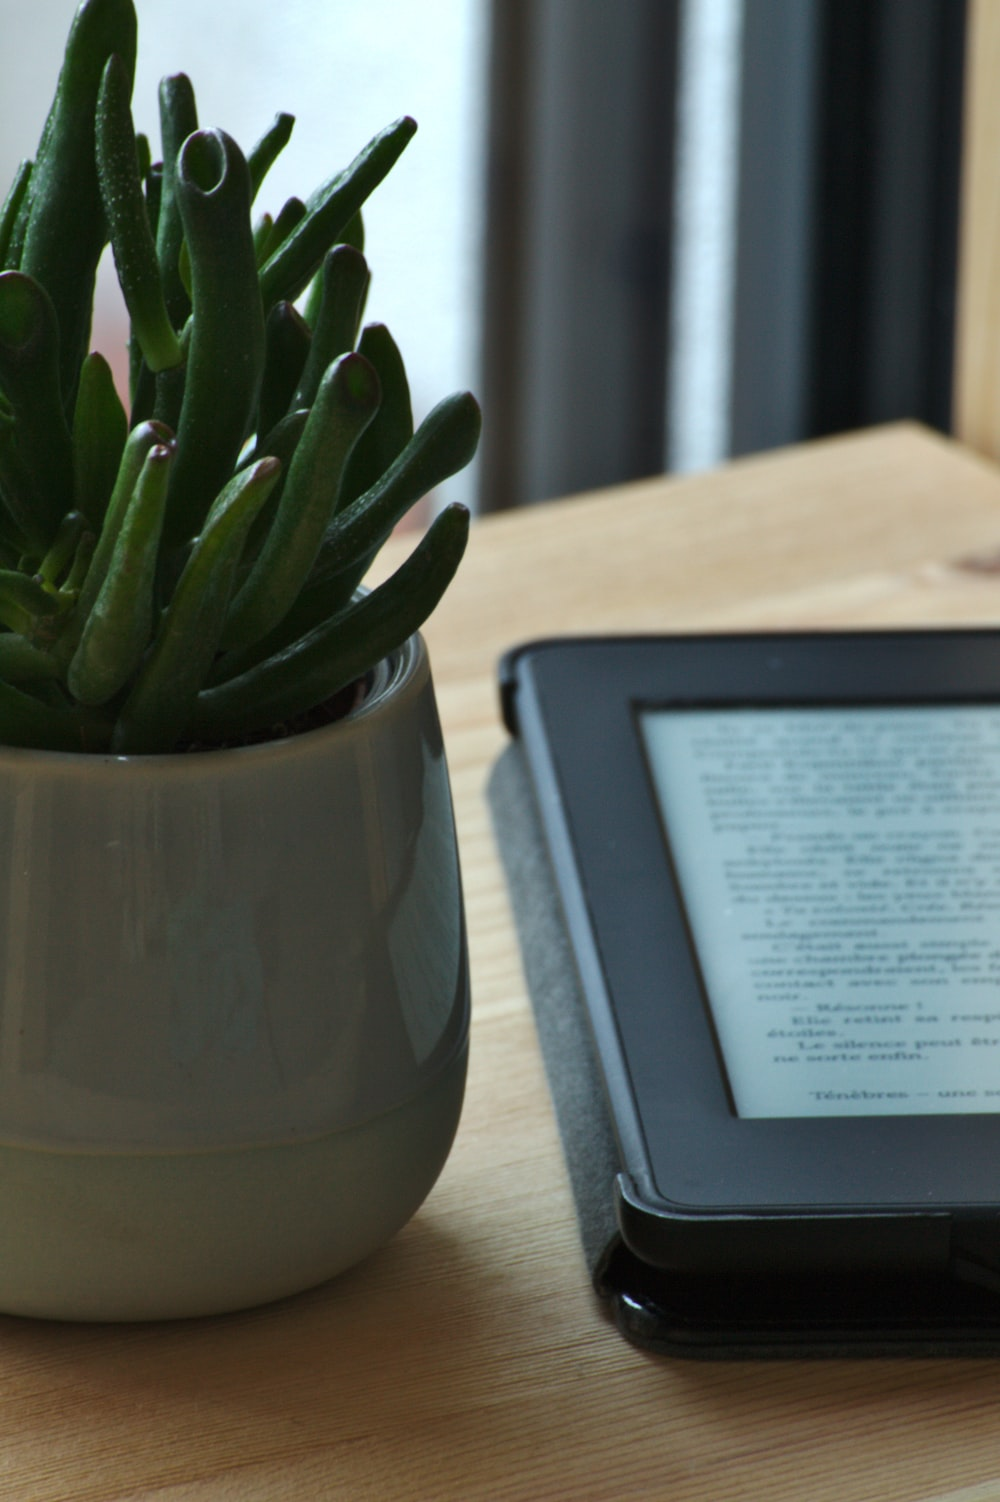 black e book reader beside green cactus plant